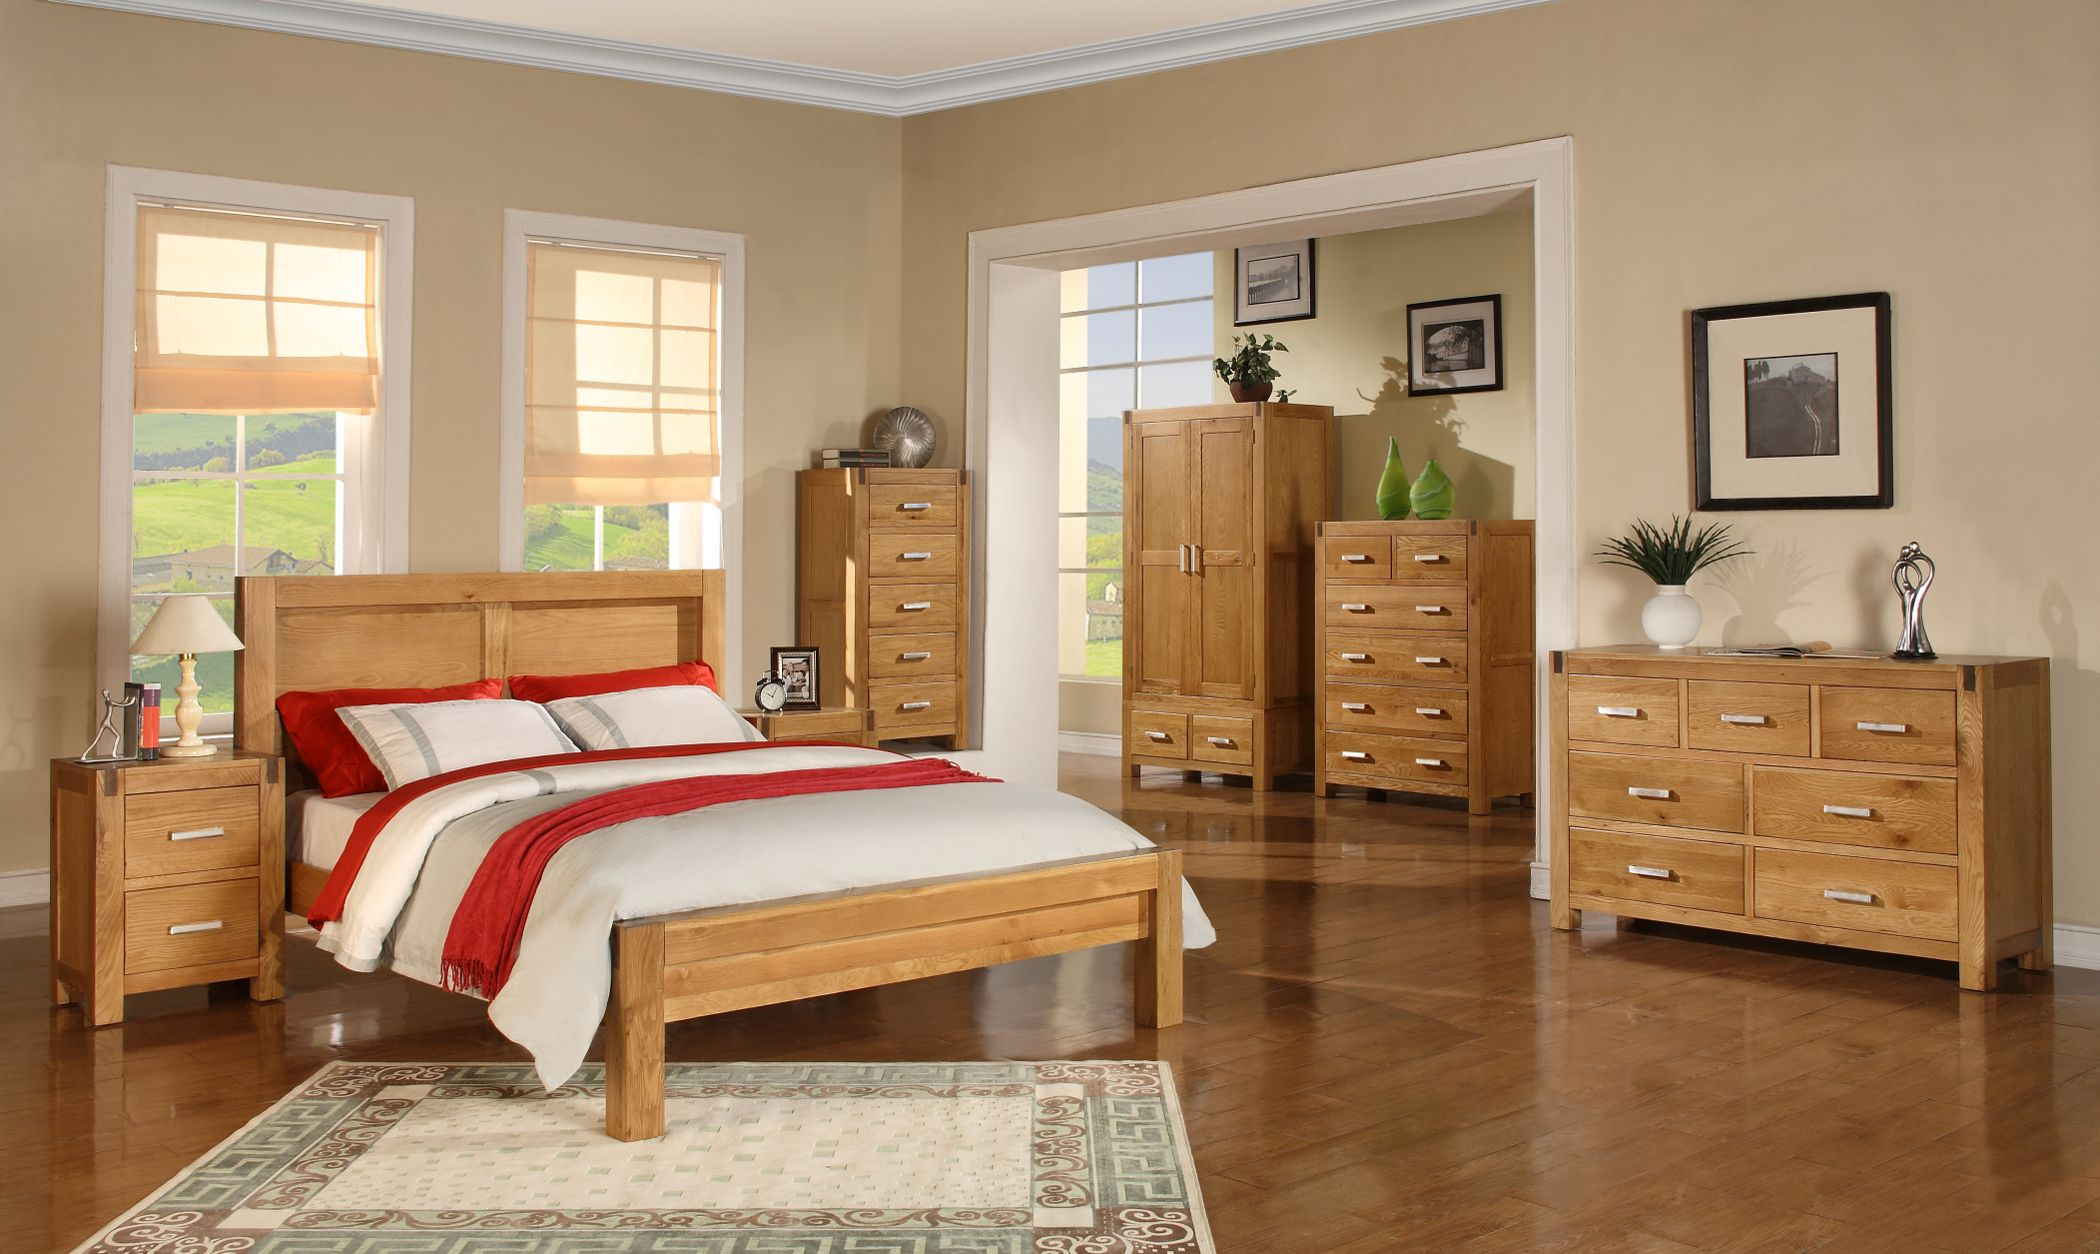 oak bedroom furniture - Oak Bedroom Sets